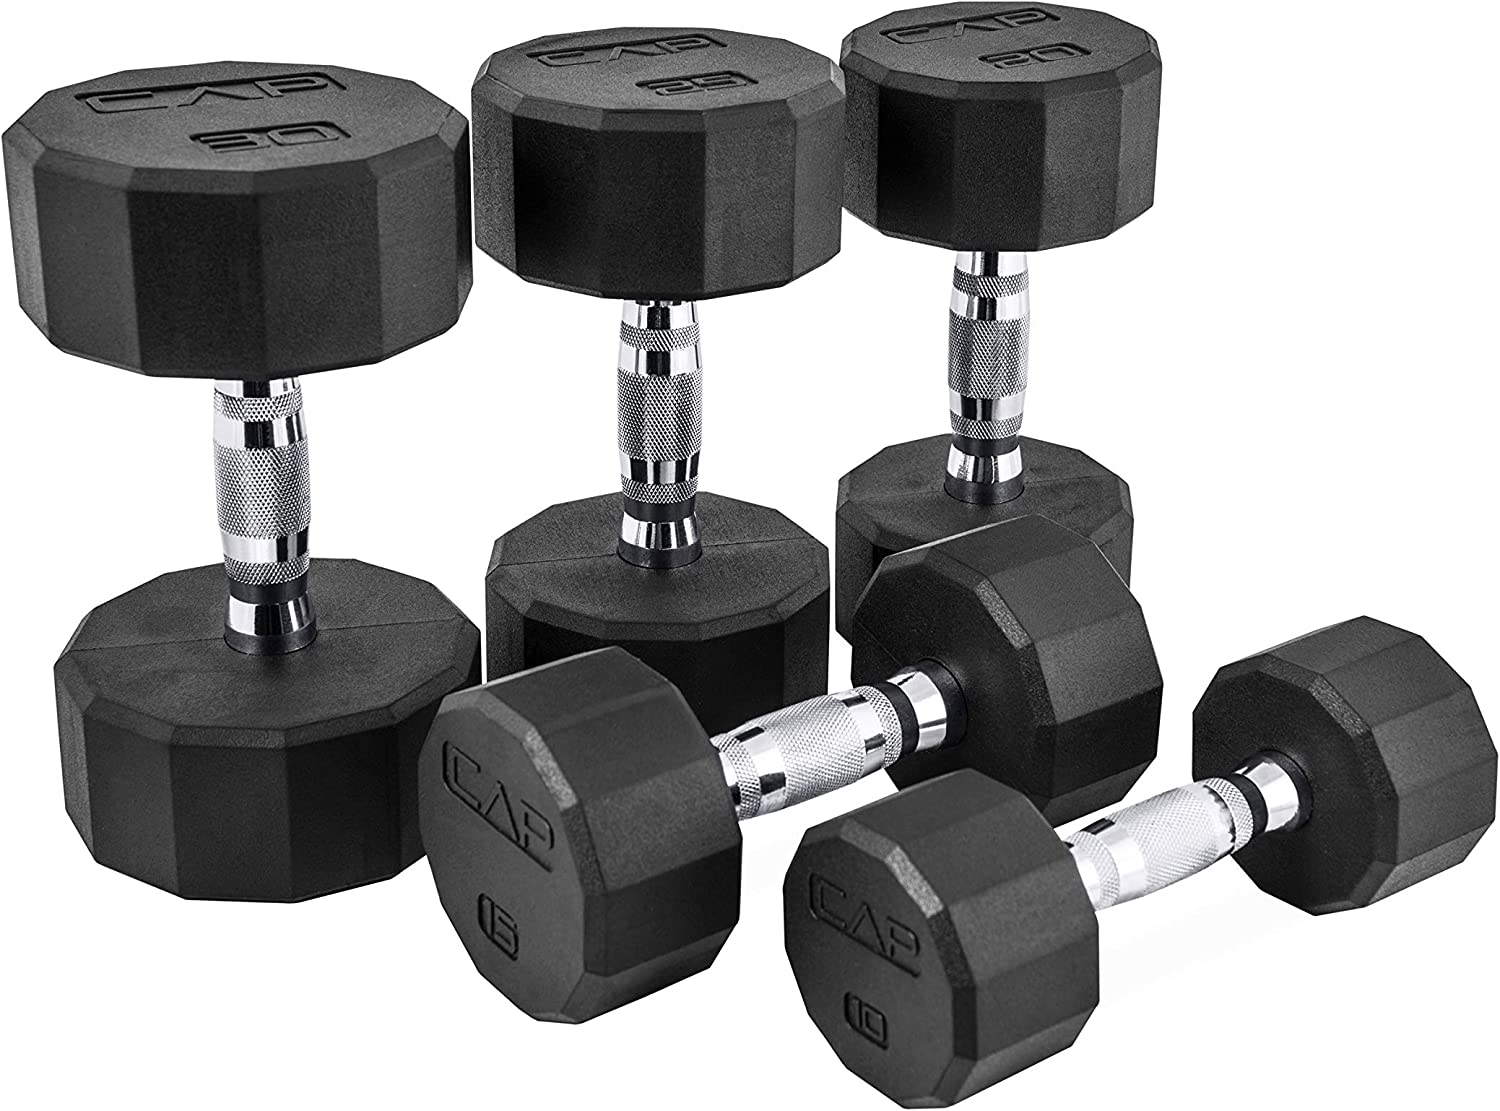 Sold in Pairs CAP Barbell 12 Sided Rubber Coated Solid Steel Cast-Iron Pair Dumbbells for Muscle Toning Home Gym Dumbbells Full Body Workout